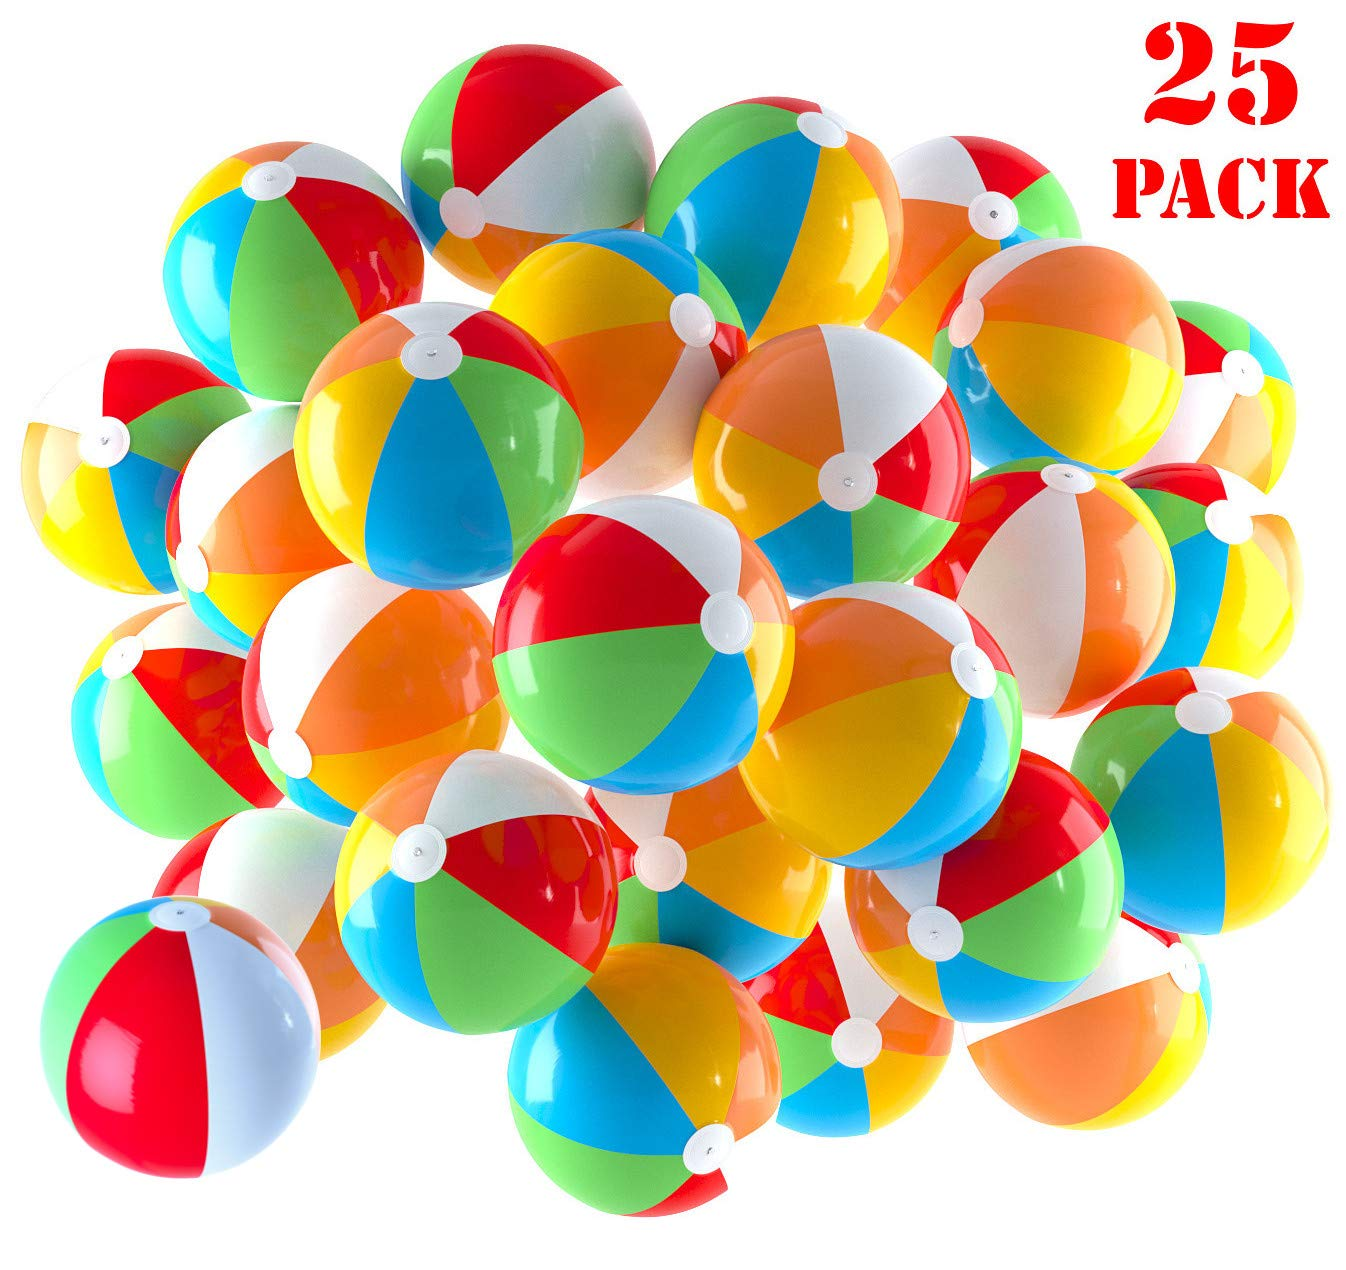 Inflatable Beach Balls 5 inch for The Pool, Beach, Summer Parties, Gifts and Decorations | 25 Pack Mini Blow up Rainbow Color Beach Balls (25 Balls) by Top Race